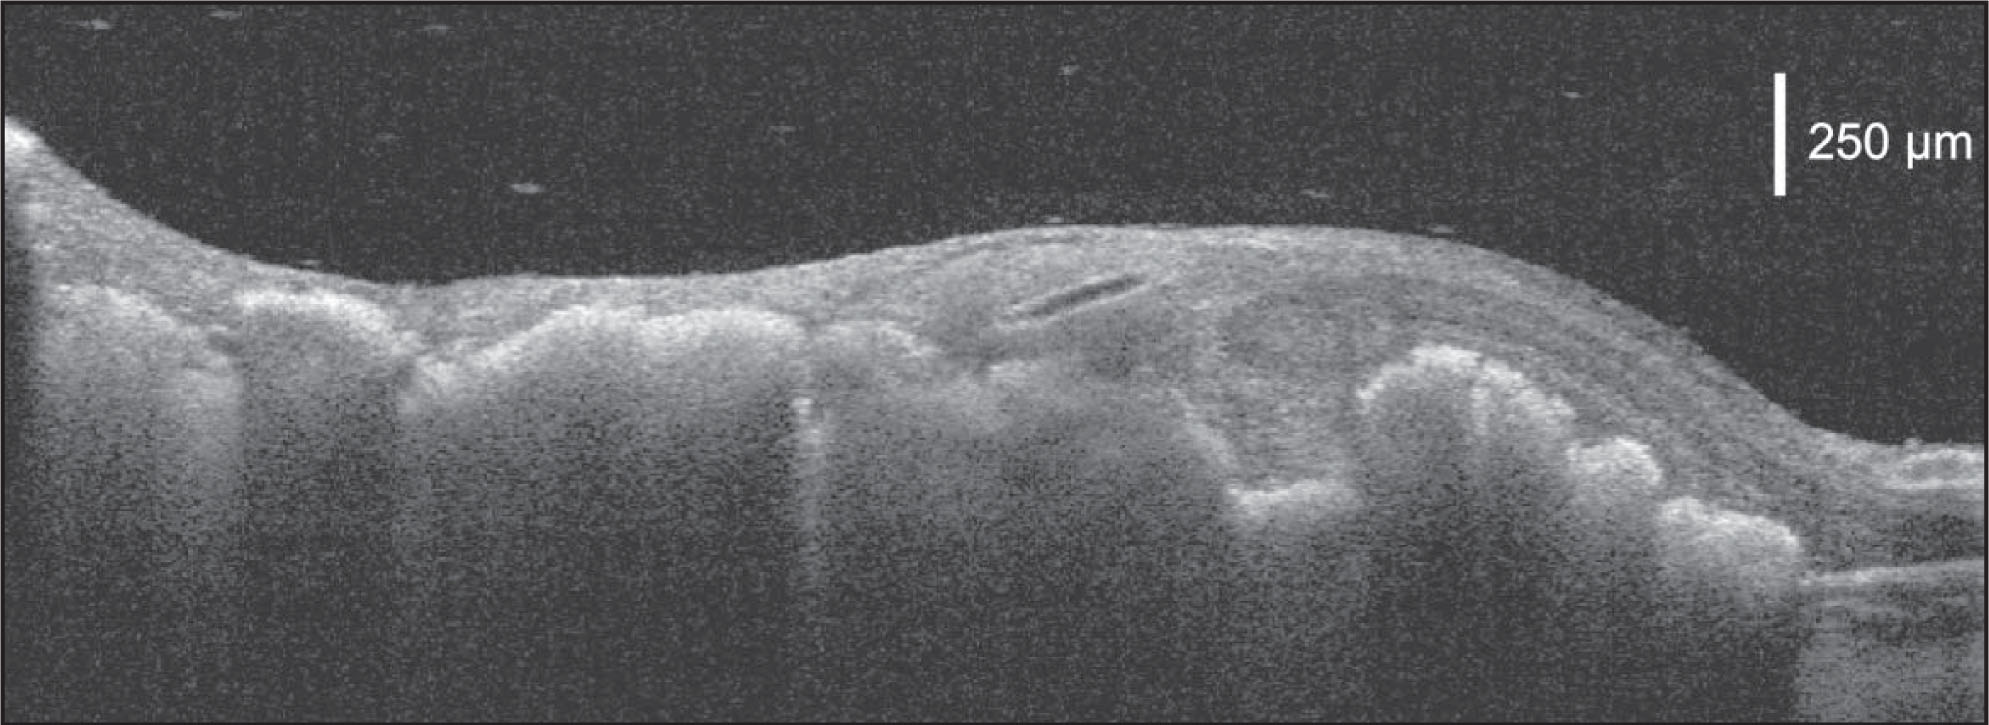 Spectral-domain optical coherence tomography of a patient with retinoblastoma demonstrating an absence of exudation, a corrugated hyperreflective band representing the inner aspect of the tumor, disruption of the surrounding retinal architecture, and a shadowing effect beneath the inner edge of the tumor.